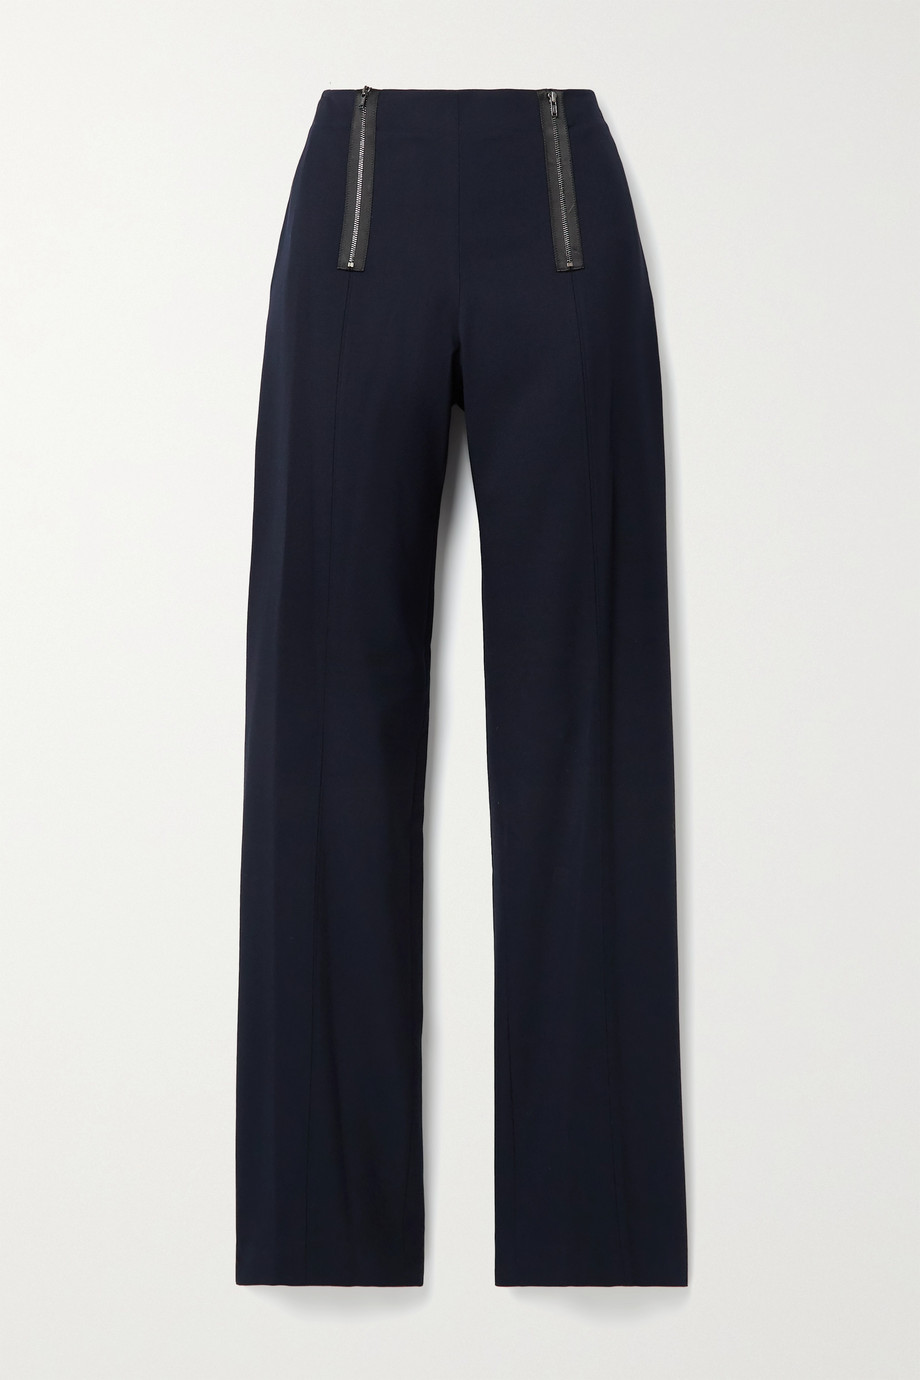 Jason Wu Zip-embellished twill straight-leg pants